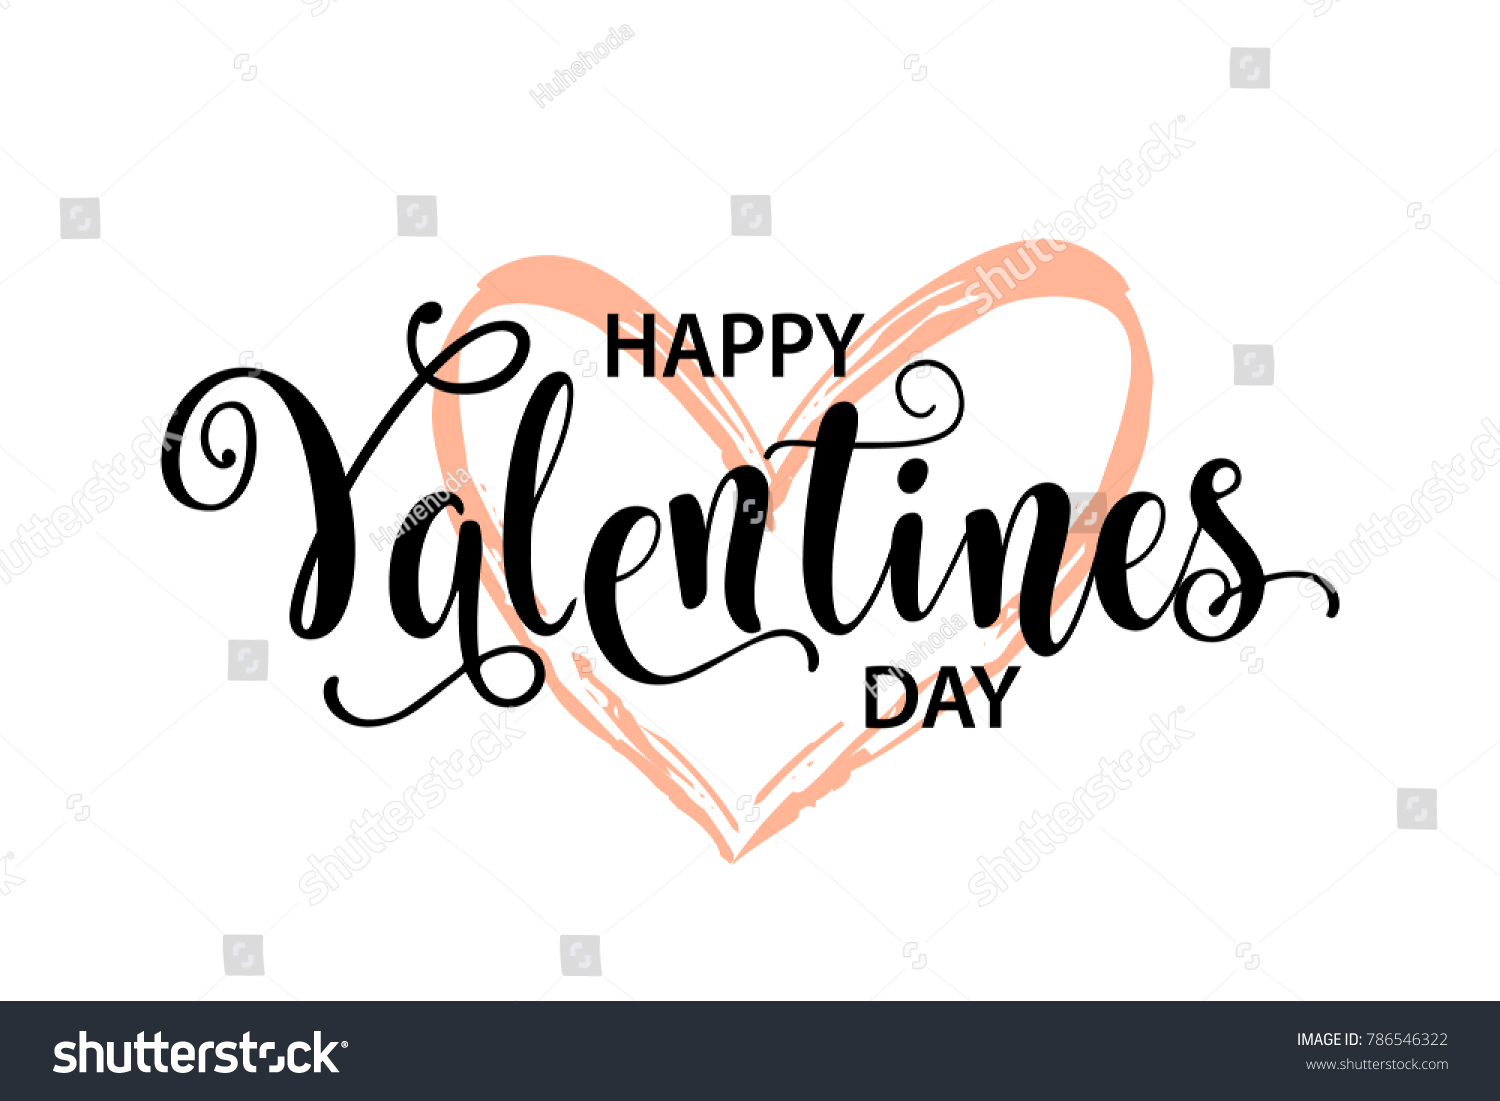 Happy Valentines Day Card Beautiful Greeting Stock Vector Royalty